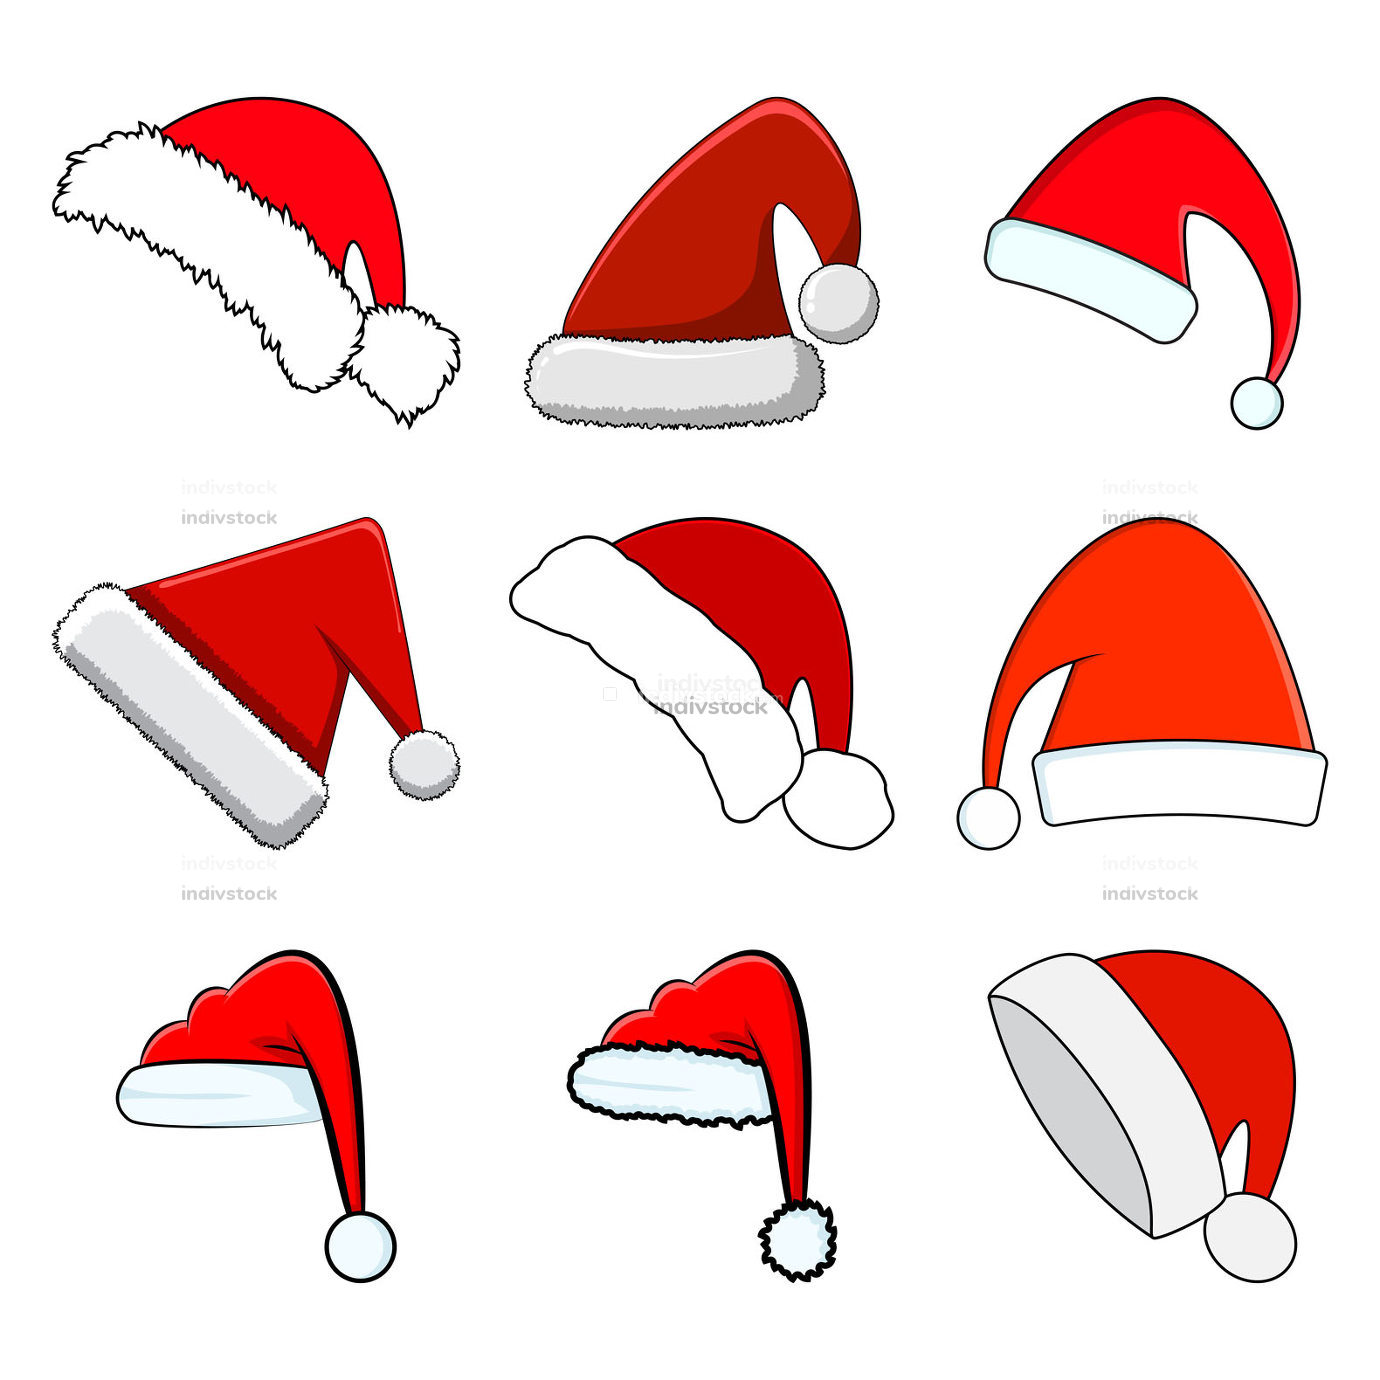 Santa hat set. Red santa claus cap collection isolated on white background. Cartoon drawing for december holiday greeting card. Christmas vector illustration. Winter group of icons and symbols.  collection isolated on white